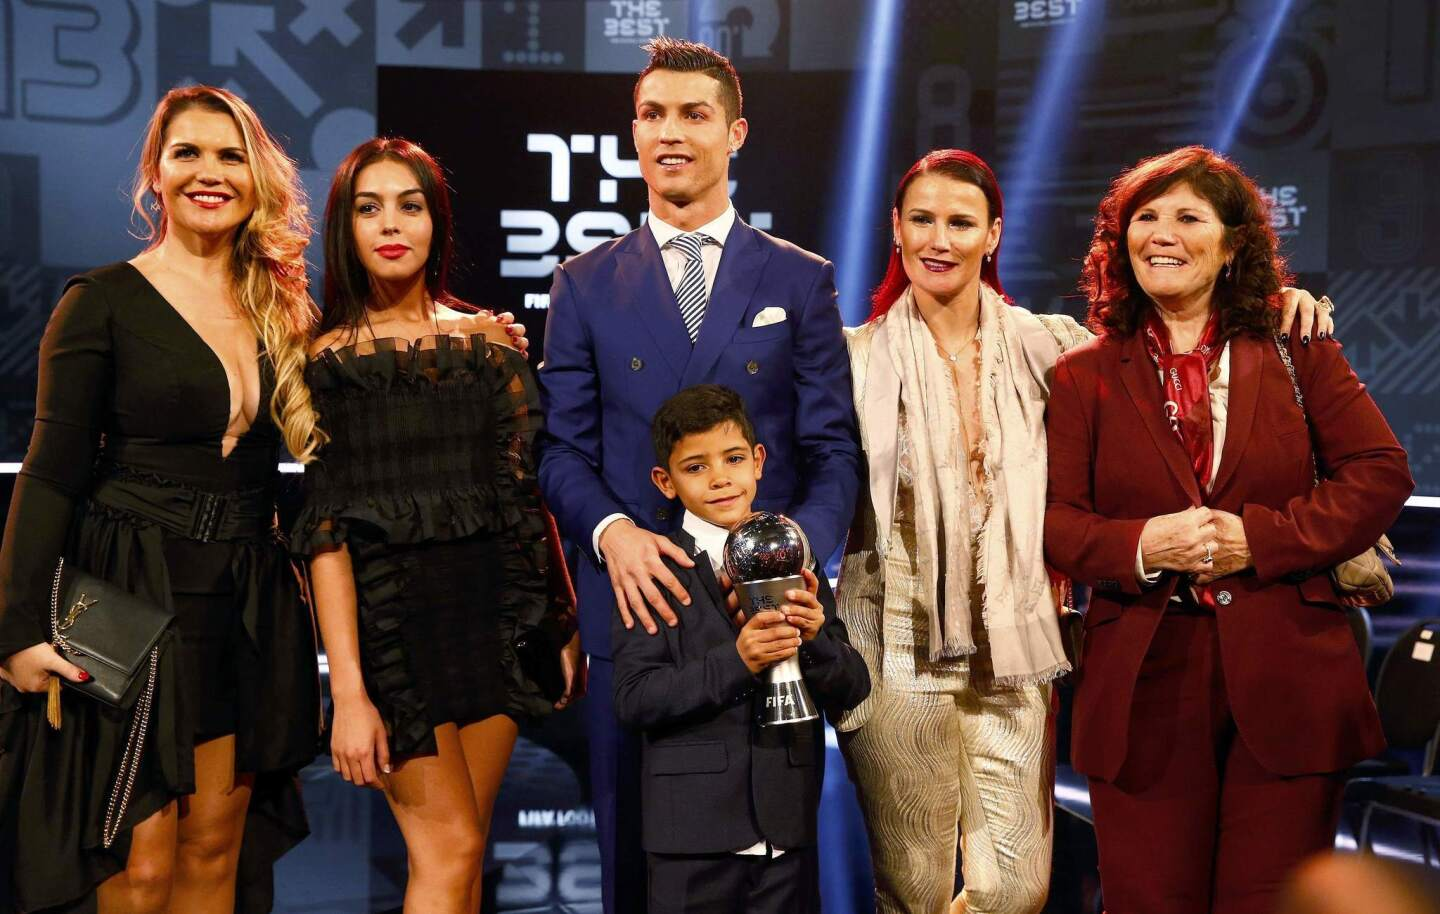 Football Soccer - FIFA Awards Ceremony - Best Men's Player - Zurich, Switzerland - 09/01/17. Cristiano Ronaldo poses with Georgina Rodriguez, his son Cristiano Ronaldo Jr, his mother Maria and his two sisters Telma and Katia after winning with the award. REUTERS/Ruben Sprich ** Usable by SD ONLY **